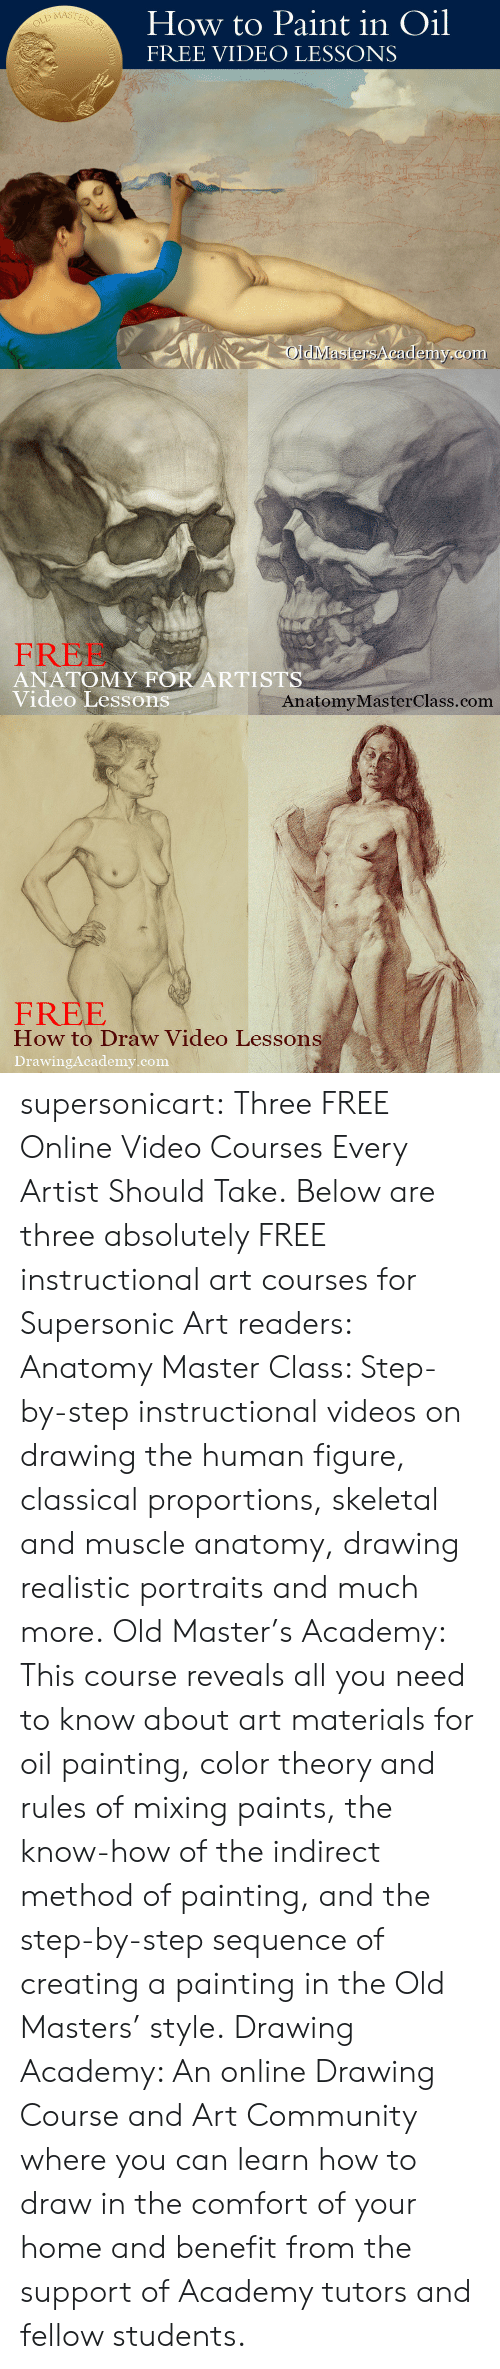 skeletal: How to Paint in Oil  FREE VIDEO LESSONS  MASTE  Rs  OldiMastersA cademy.com   FREE  ANATOMY FOR ARTISTS  Video Lesson  AnatomyMasterClass.com   FREE  How to Draw Video Lessons  DrawingAcademy.com supersonicart: Three FREE Online Video Courses Every Artist Should Take. Below are three absolutely FREE instructional art courses for Supersonic Art readers:  Anatomy Master Class: Step-by-step instructional videos on drawing the human figure, classical proportions, skeletal and muscle anatomy, drawing realistic portraits and much more.  Old Master's Academy: This course reveals all you need to know about art materials for oil painting, color theory and rules of mixing paints, the know-how of the indirect method of painting, and the step-by-step sequence of creating a painting in the Old Masters' style.  Drawing Academy: An online Drawing Course and Art Community where you can learn how to draw in the comfort of your home and benefit from the support of Academy tutors and fellow students.